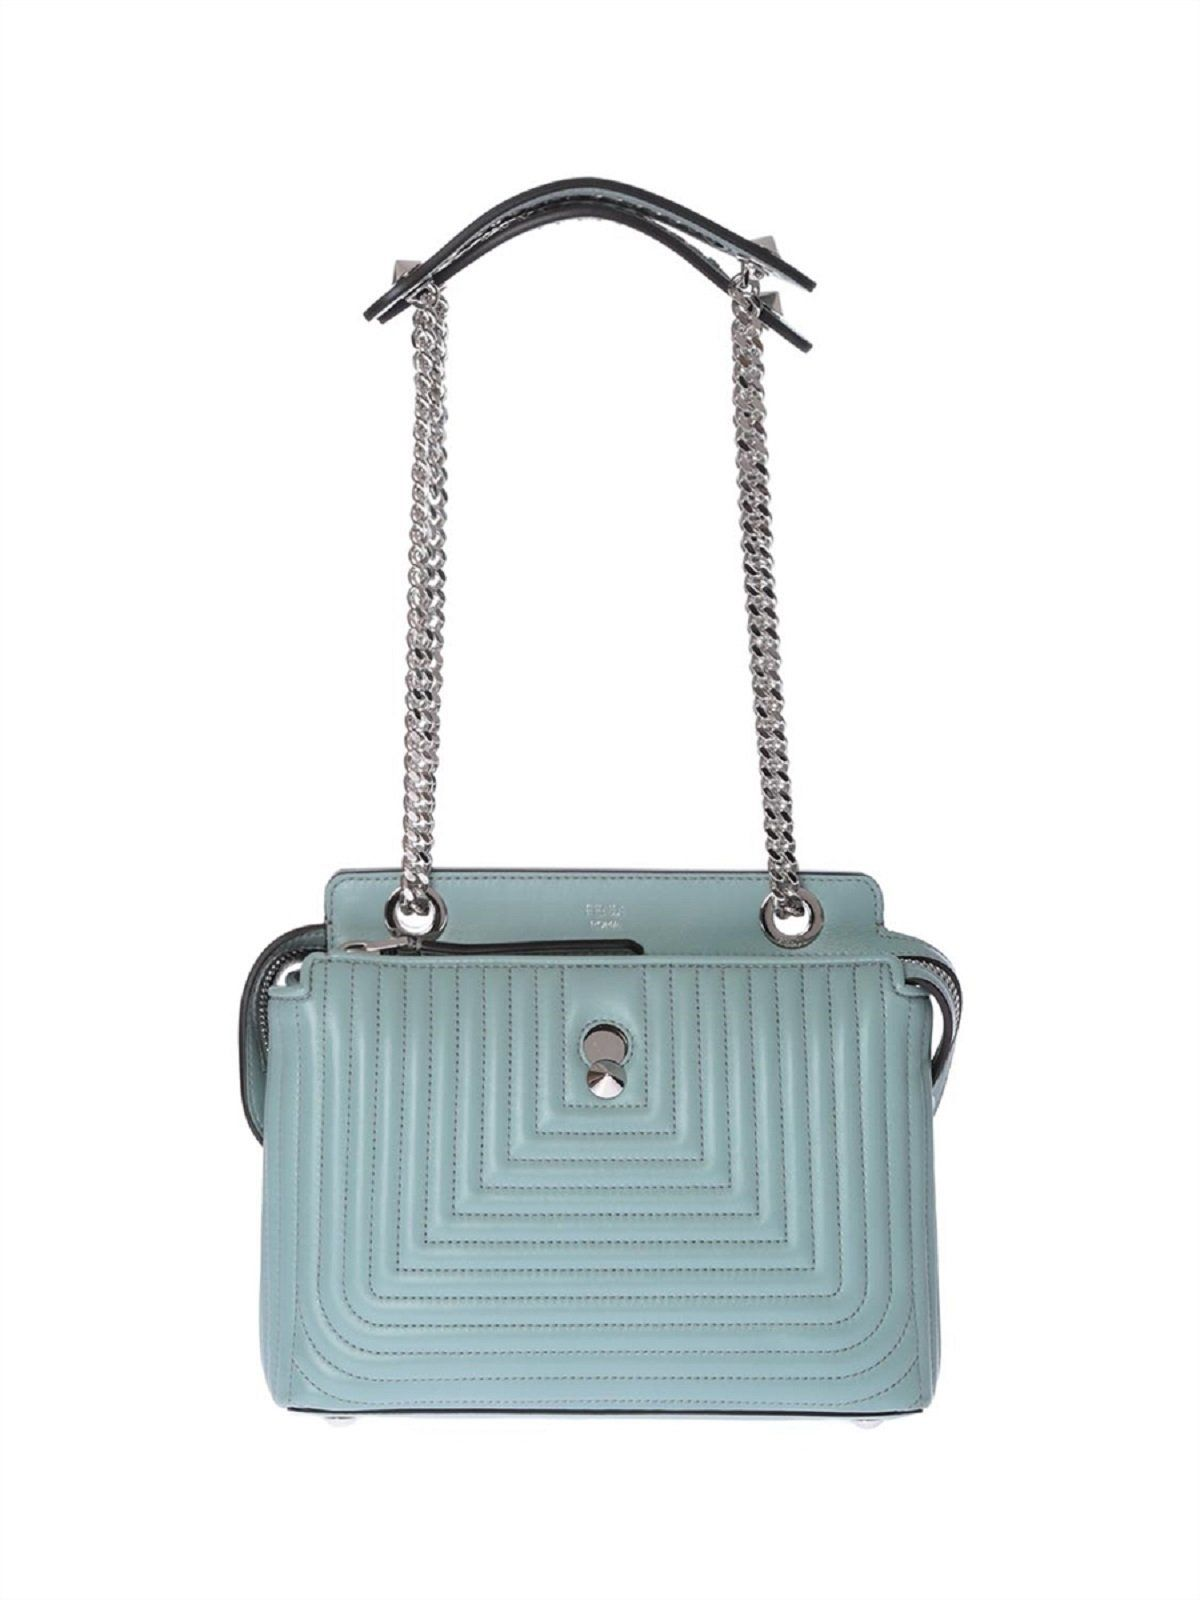 Fendi Dotcom Click Pale Blue Small Quilted Lambskin Leather Chain Satchel  Bag Silver Hardware 8BN299 Dust 01fa8e3422281